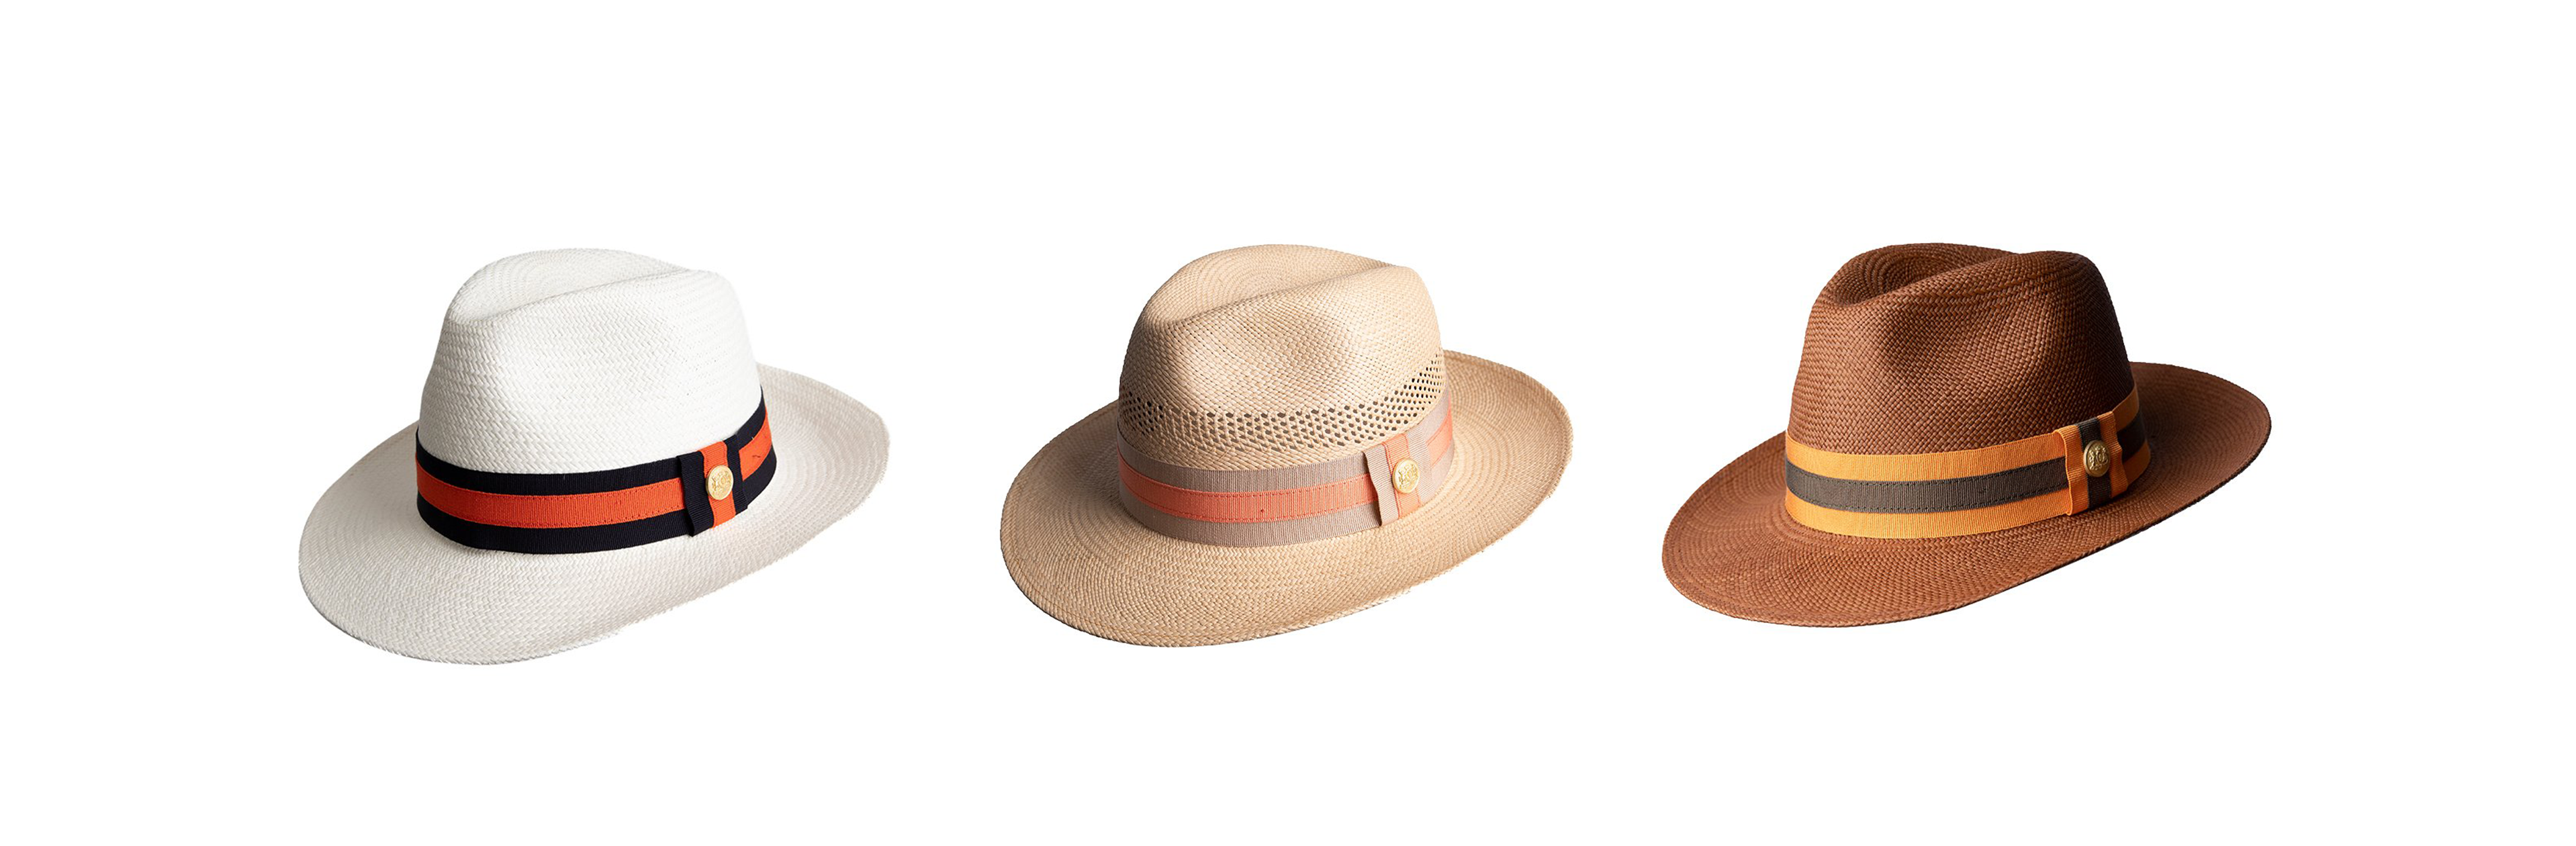 fantastic savings really cheap best choice Different Types Of Panama Hats